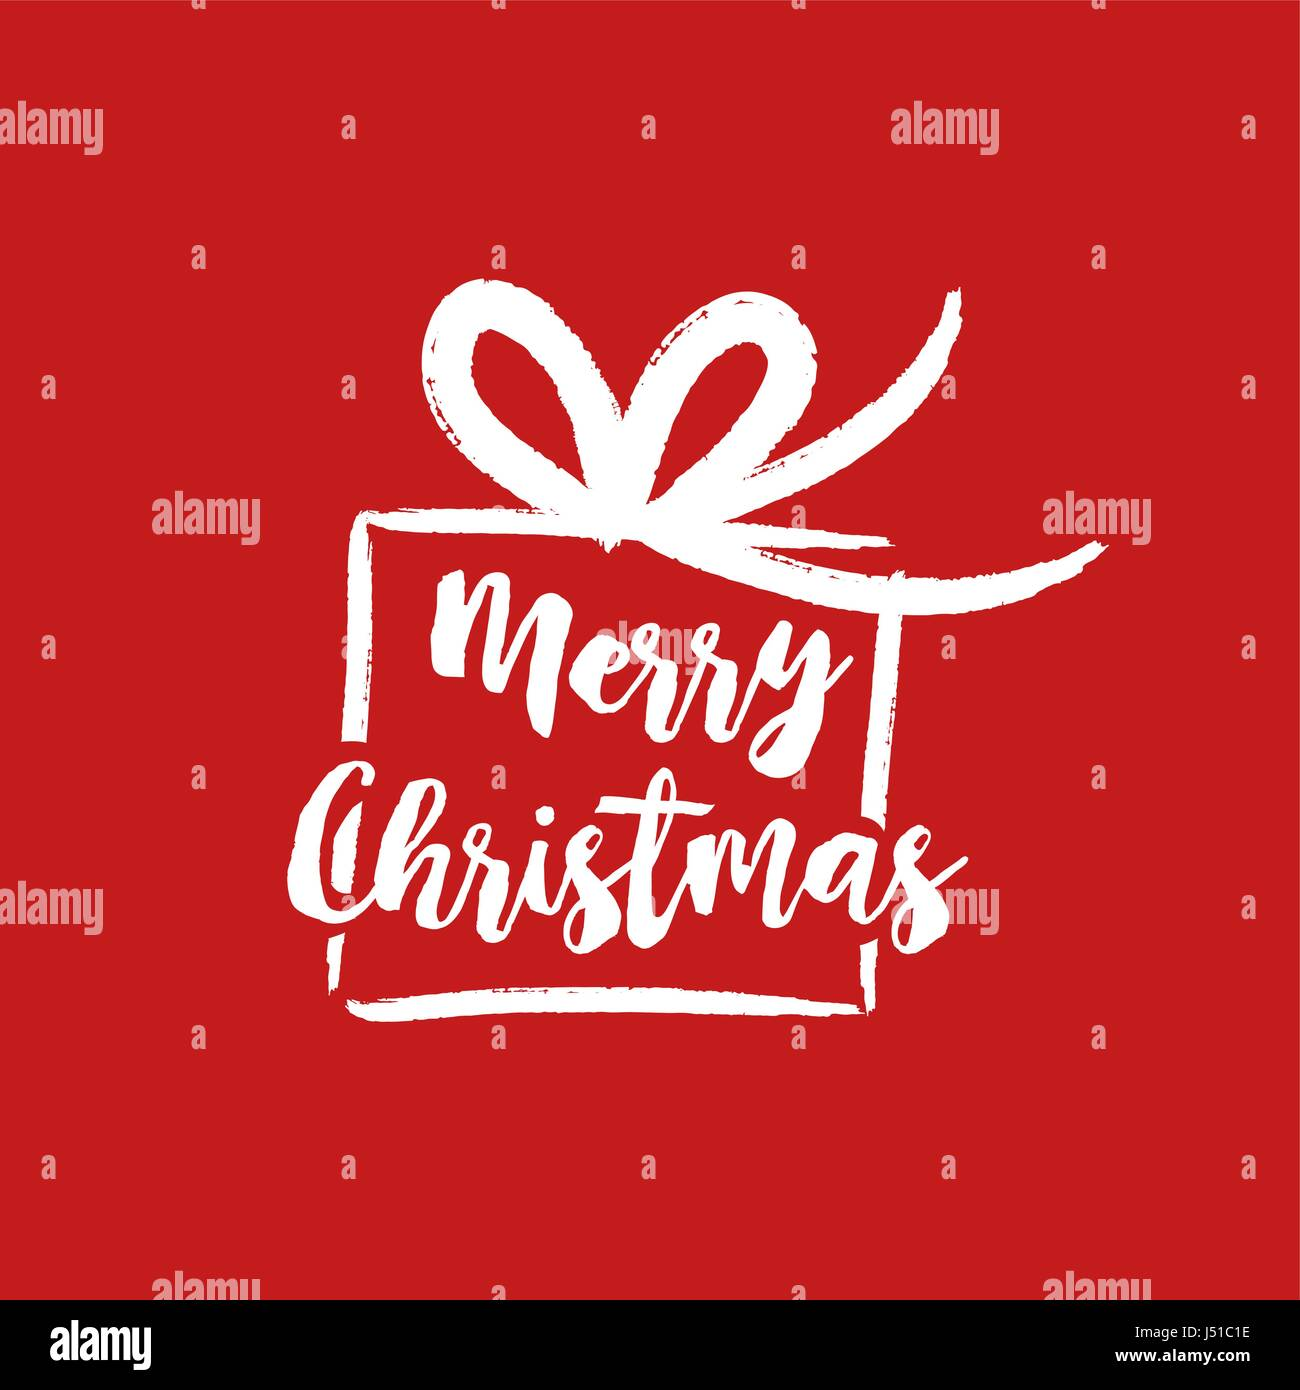 Merry christmas gift text quote calligraphy lettering design for merry christmas gift text quote calligraphy lettering design for holiday season creative red typography font illustration eps10 vector negle Choice Image